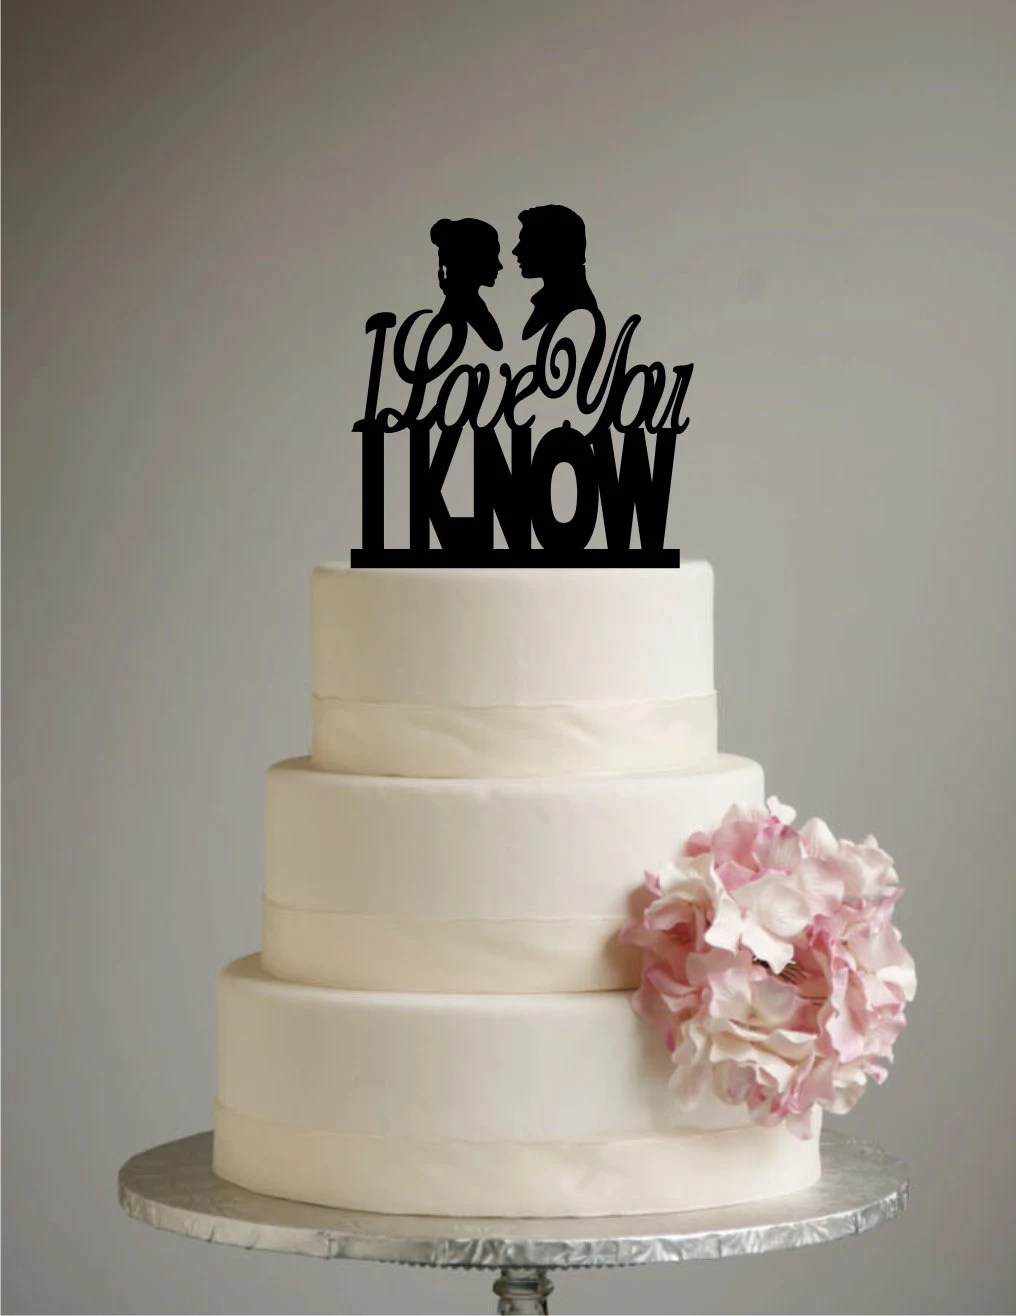 Star Wars Inspired Wedding Cake Topper I Love you I Know   Etsy image 0